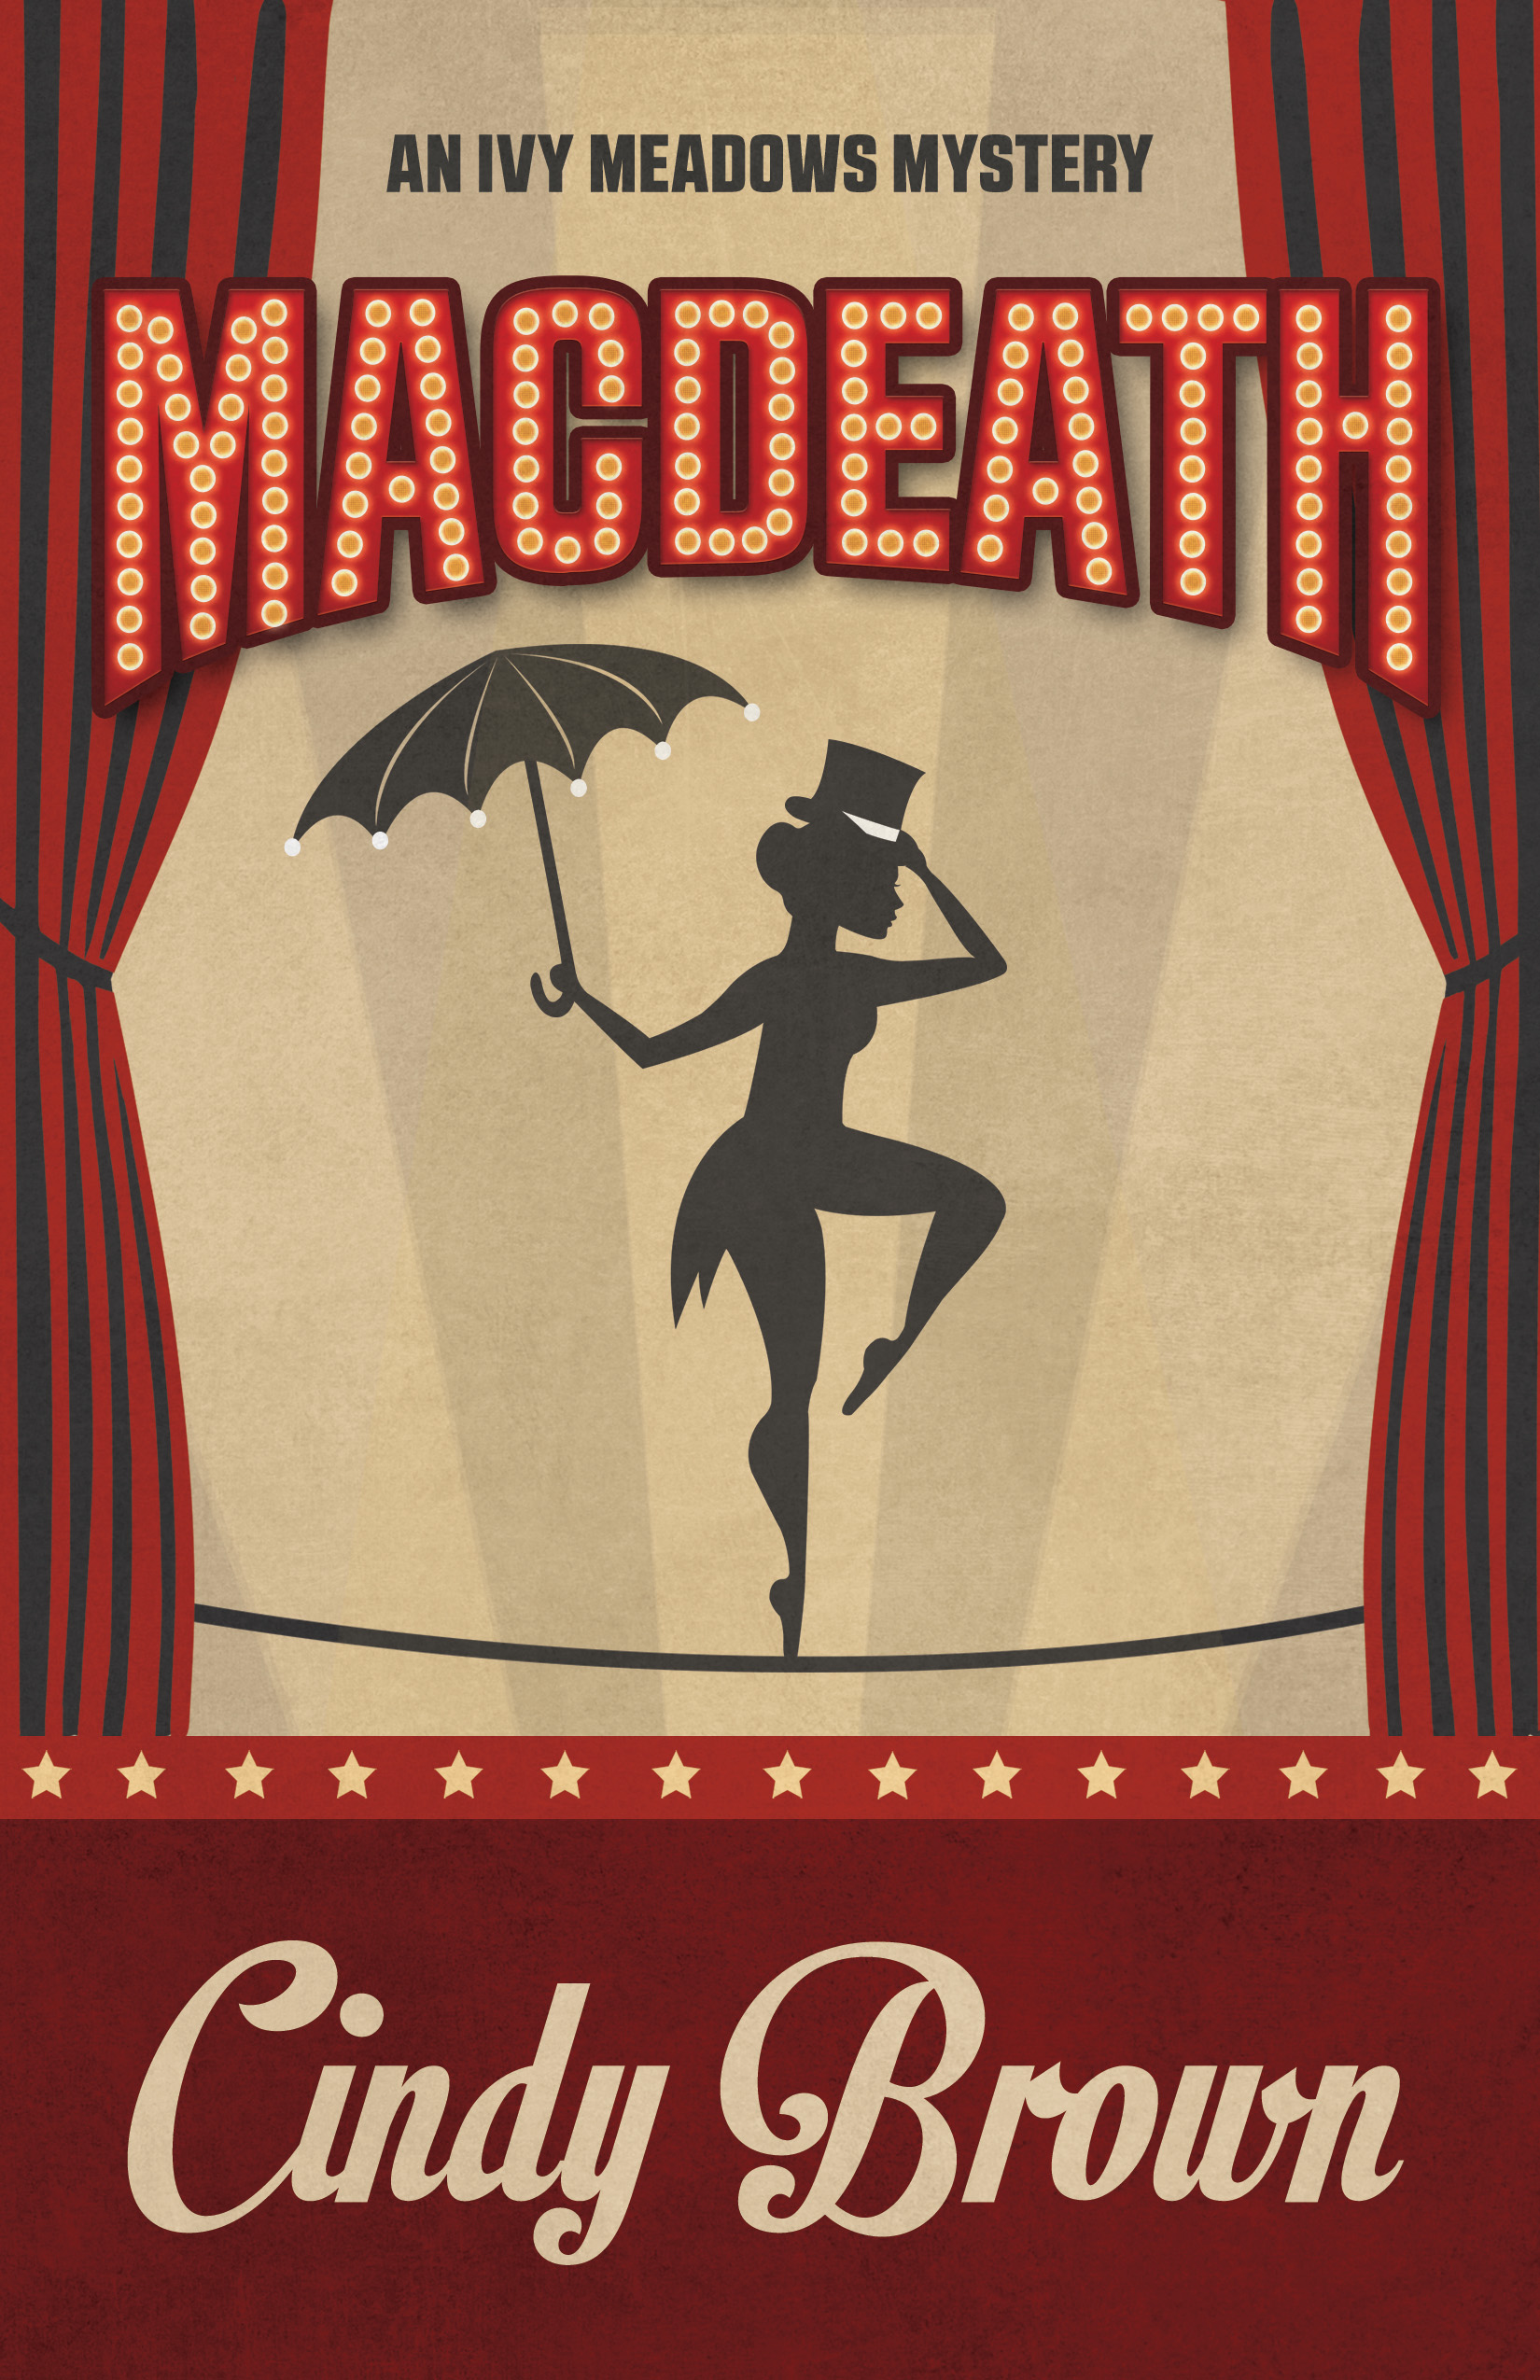 MacDeath: New from Cindy Brown